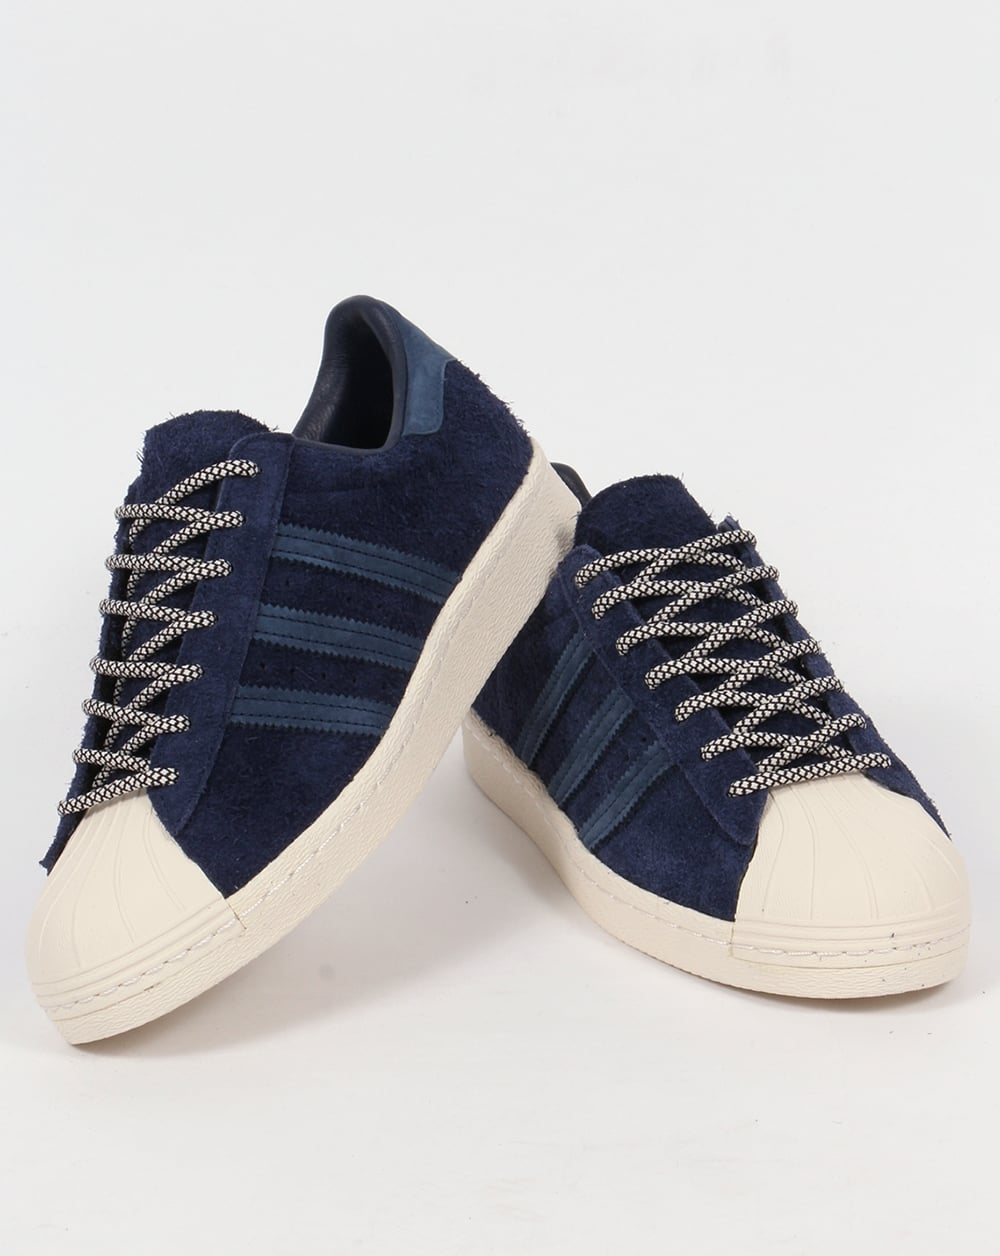 adidas superstar navy blue